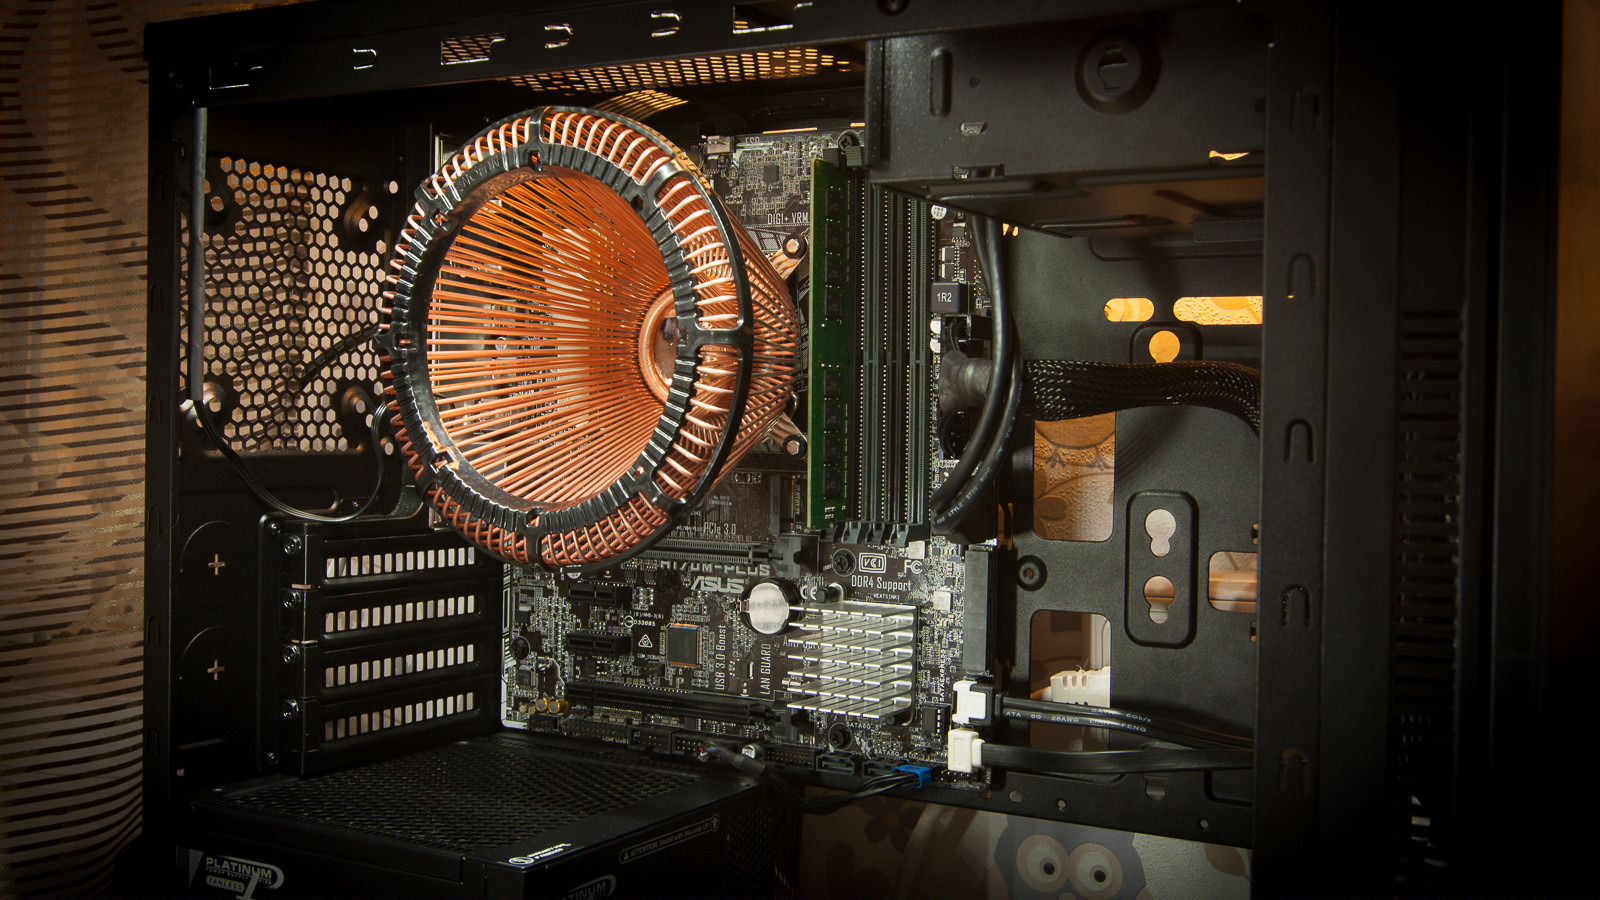 How To Build A Home From A Older Pc